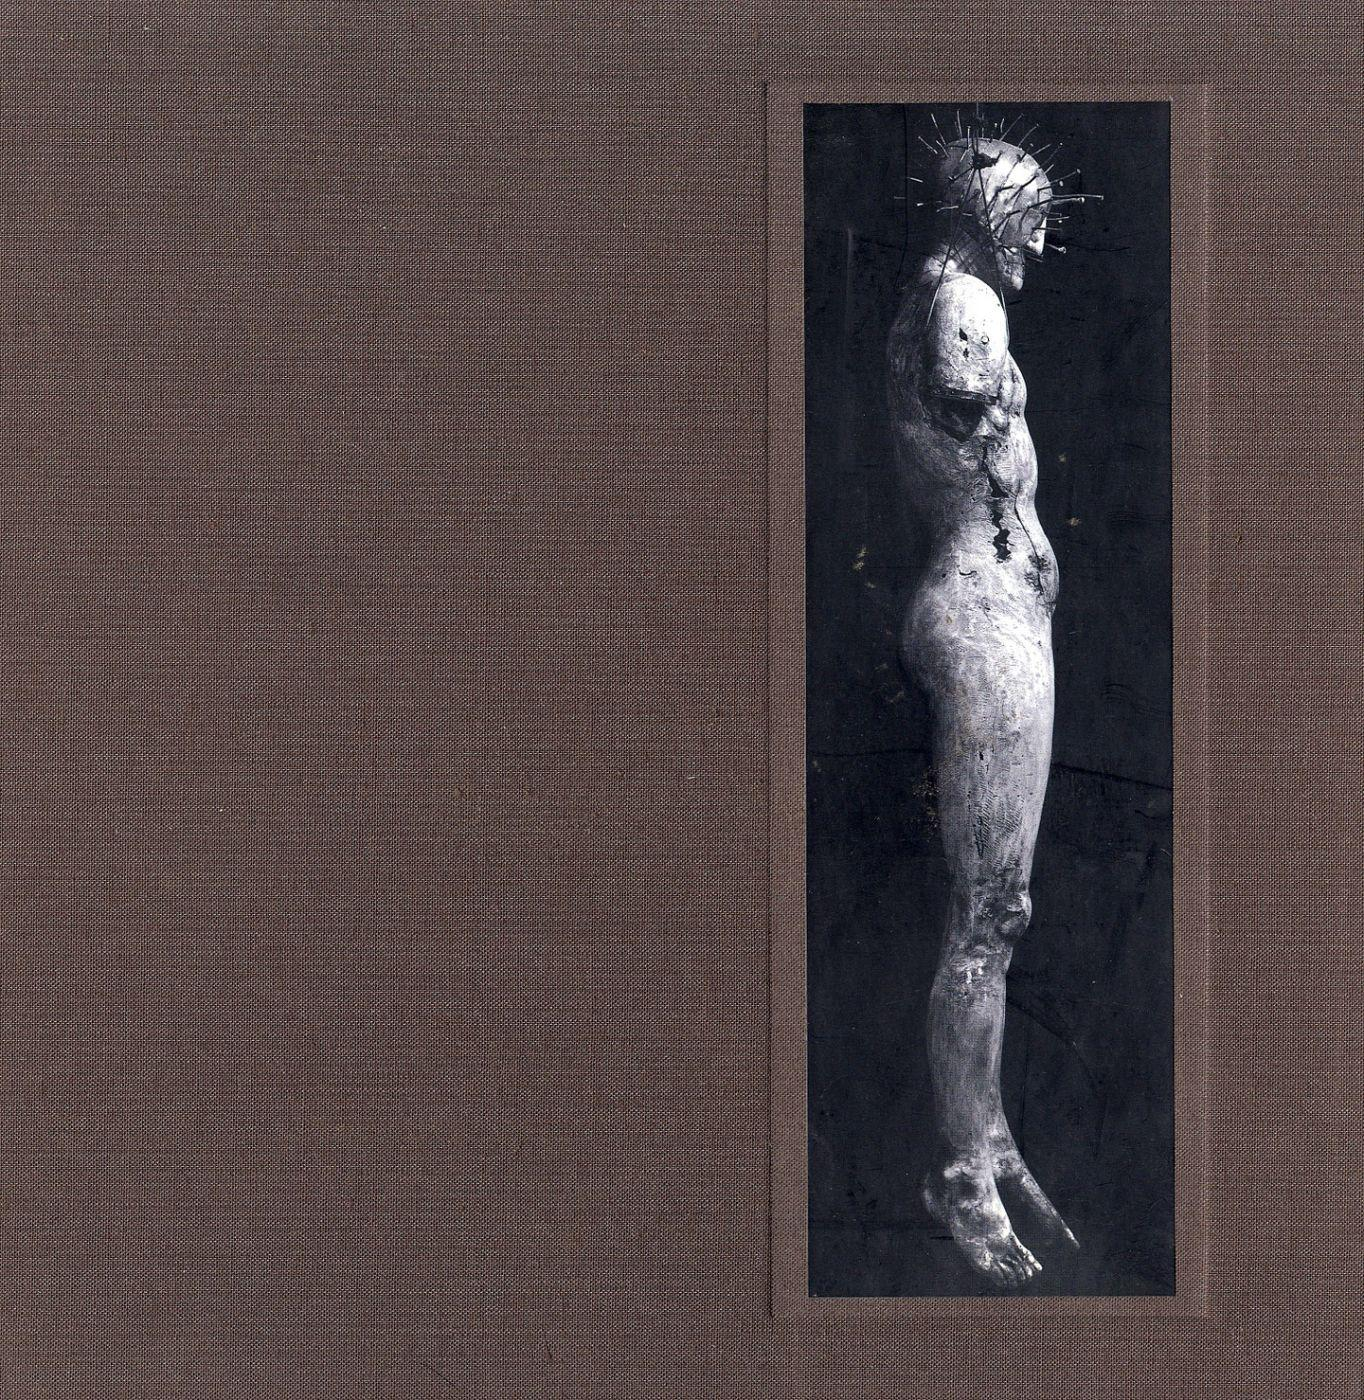 Joel-Peter Witkin: The Bone House (First Edition) - WITKIN, Joel-Peter, PARRY, Eugenia